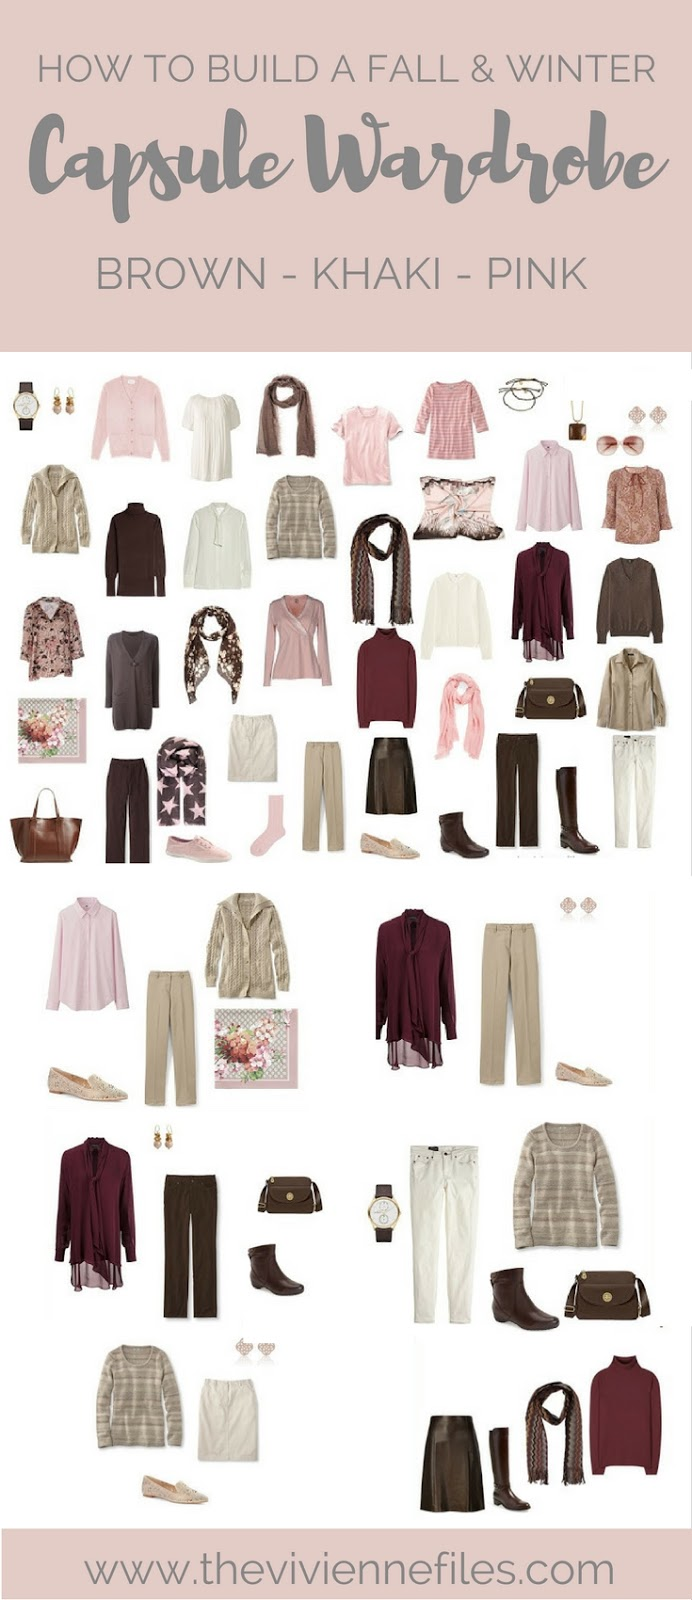 How To Build A Capsule Wardrobe In Brown, Khaki And Pink